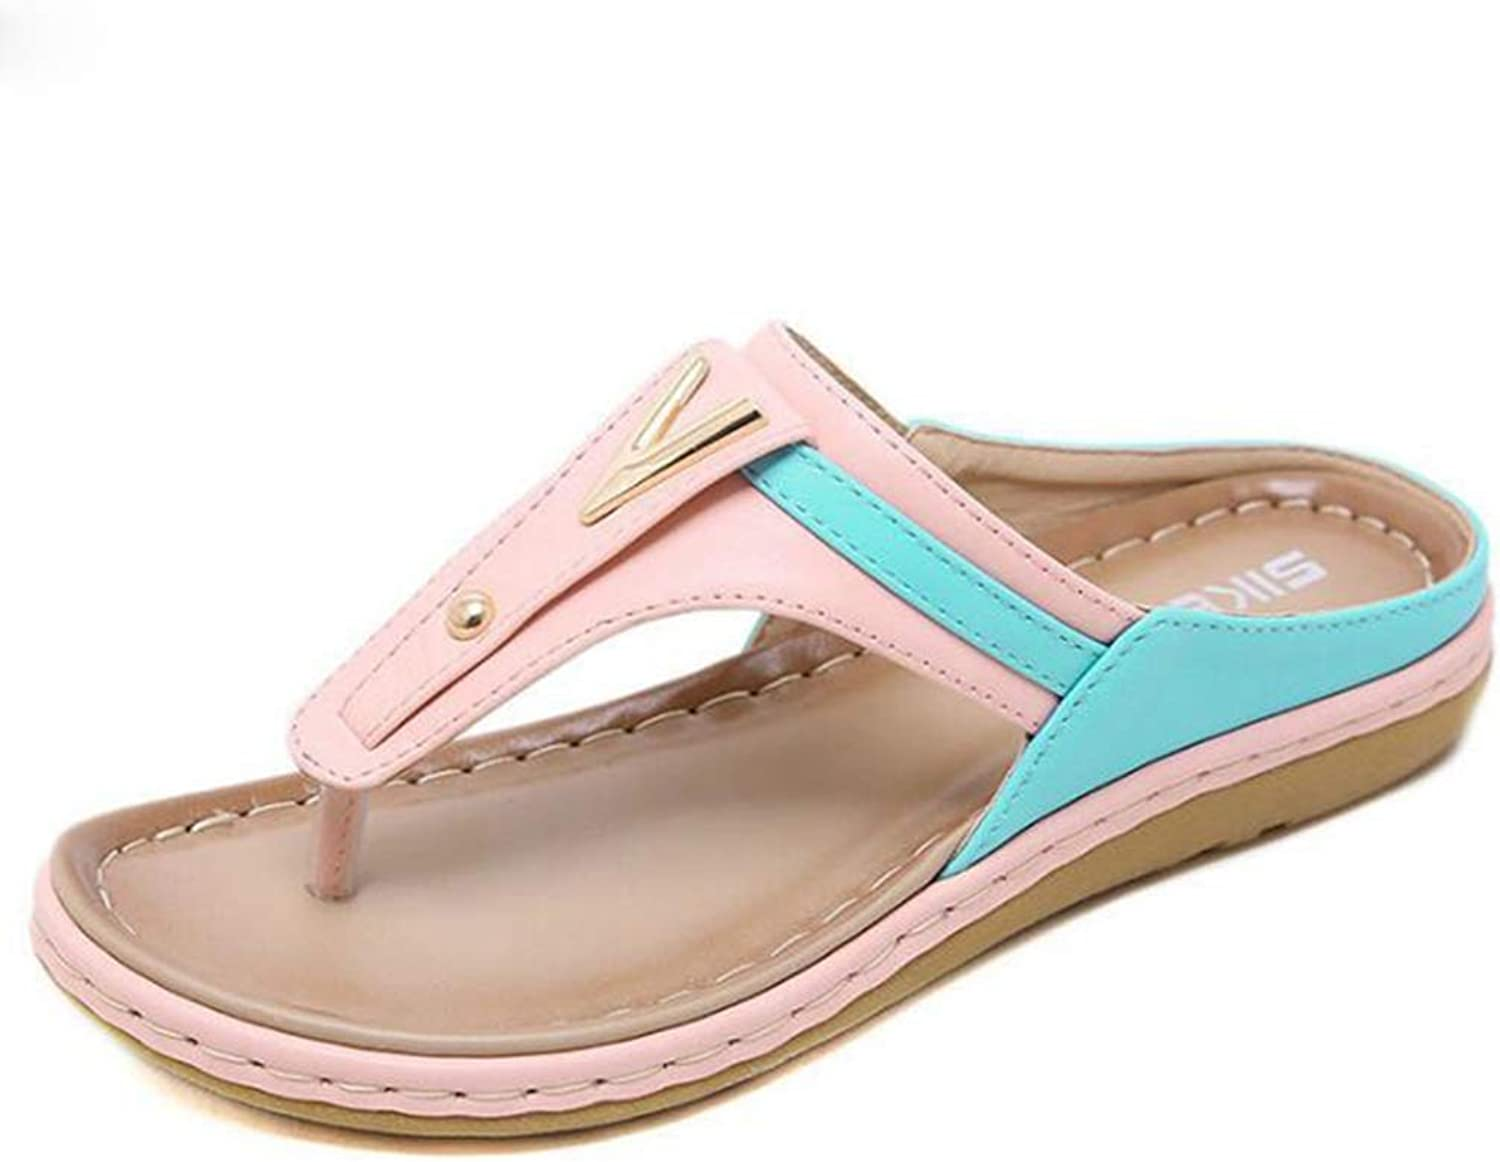 U-MAC Women Summer Flat Sandals Slingback Ankle Strap Sandals Clip Toe Beach Walking Flip Flops Bohemian Dress shoes